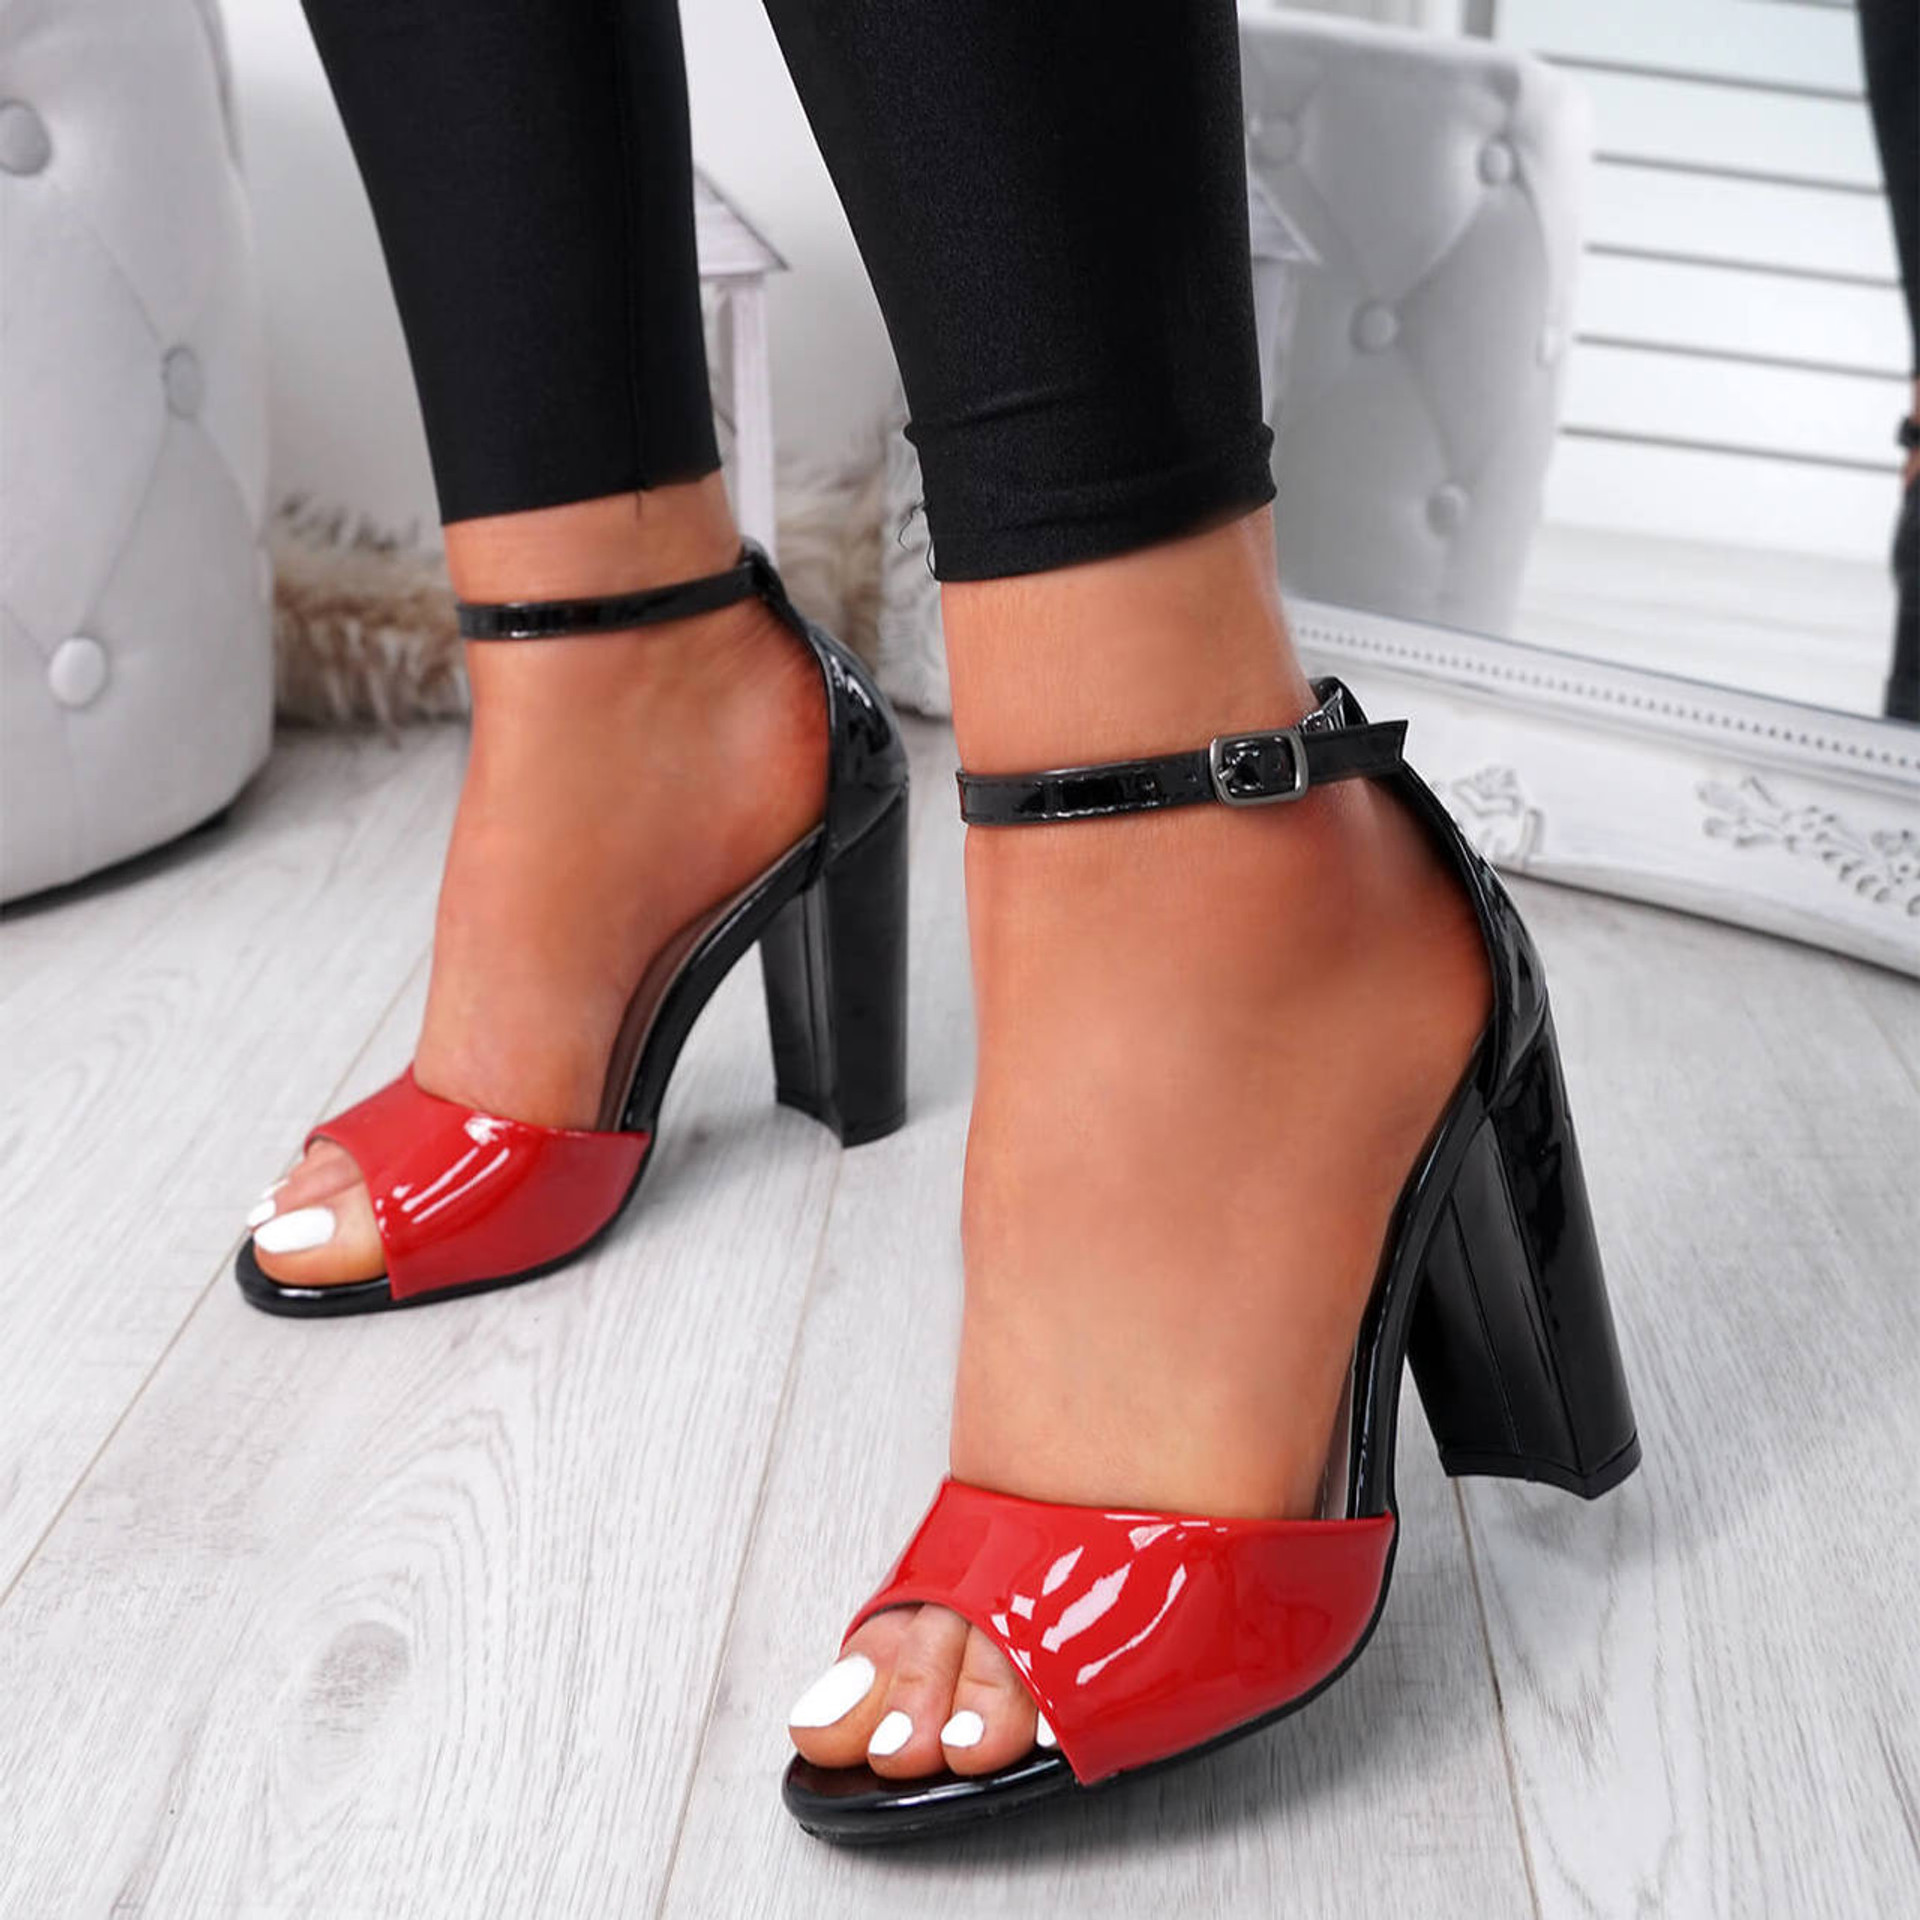 Lagry Red Patent Block Heel Sandals